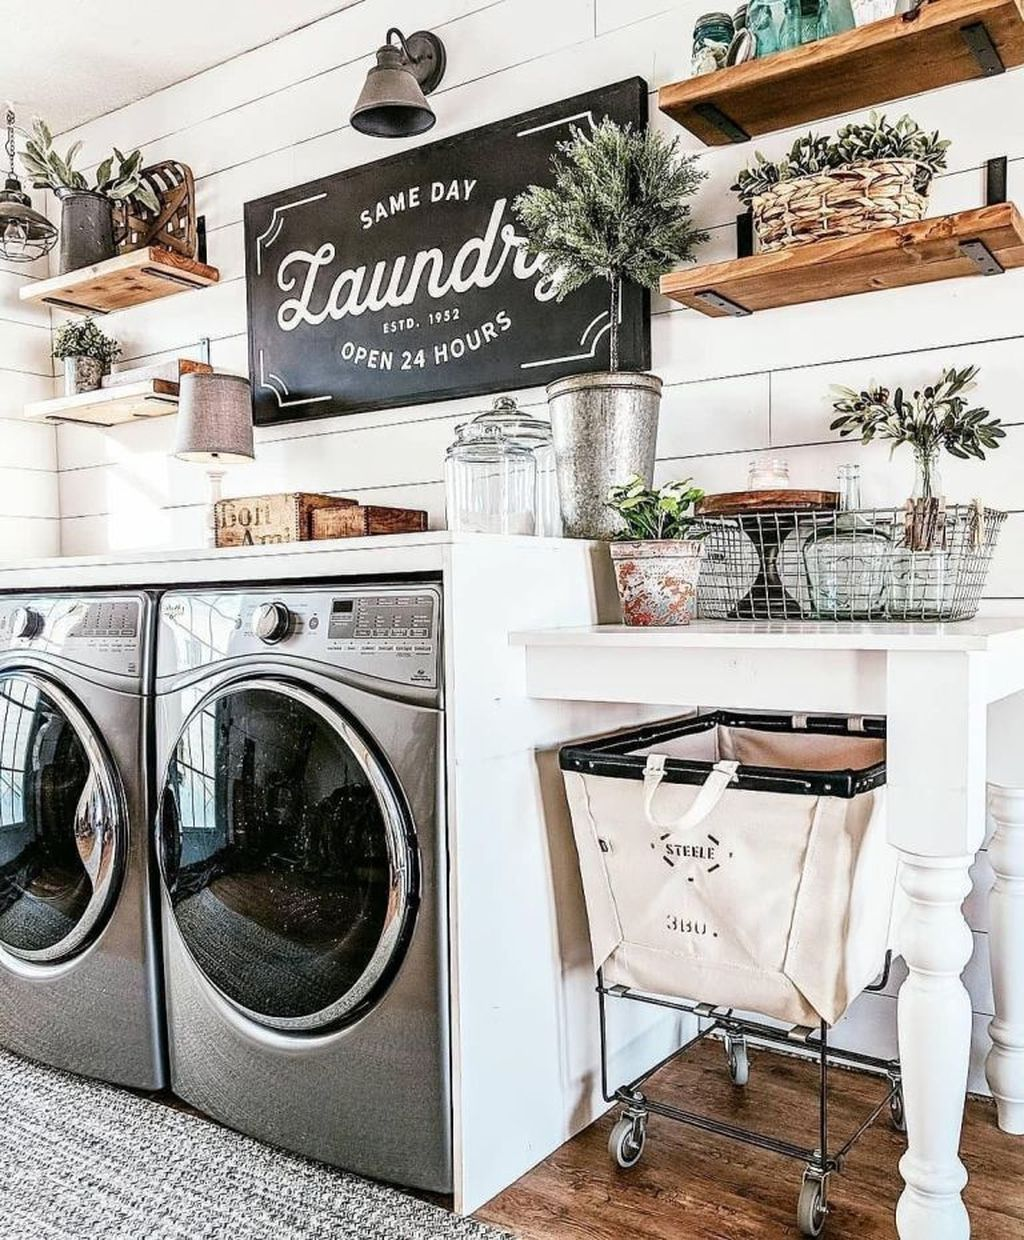 36 Cool Farmhouse Decor Ideas For Laundy Room images